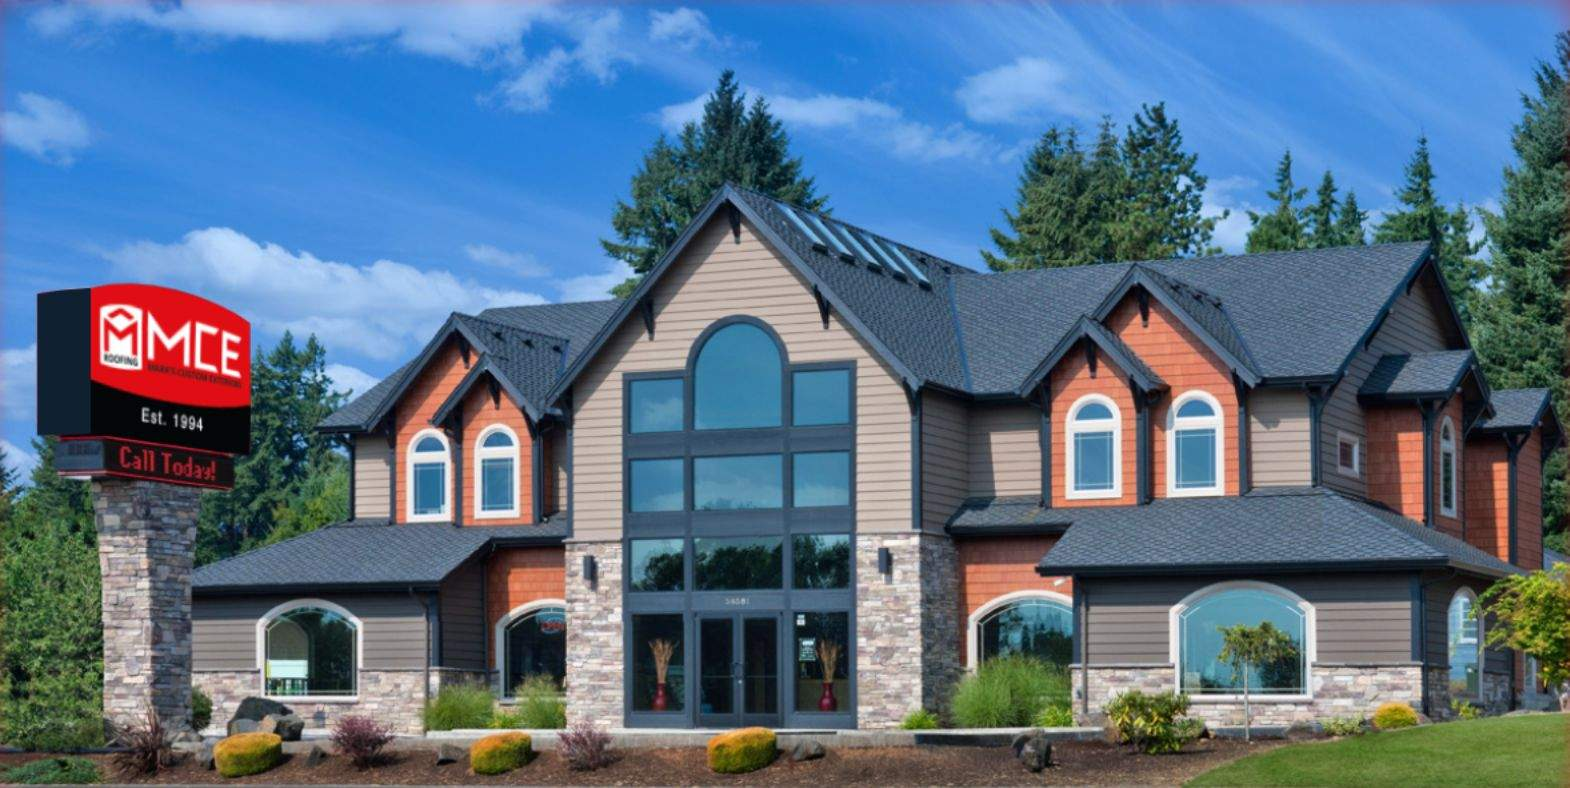 MCE Roofing, Portland Roofing Contractor, #MCERoof, GAF Master Elite Contractor